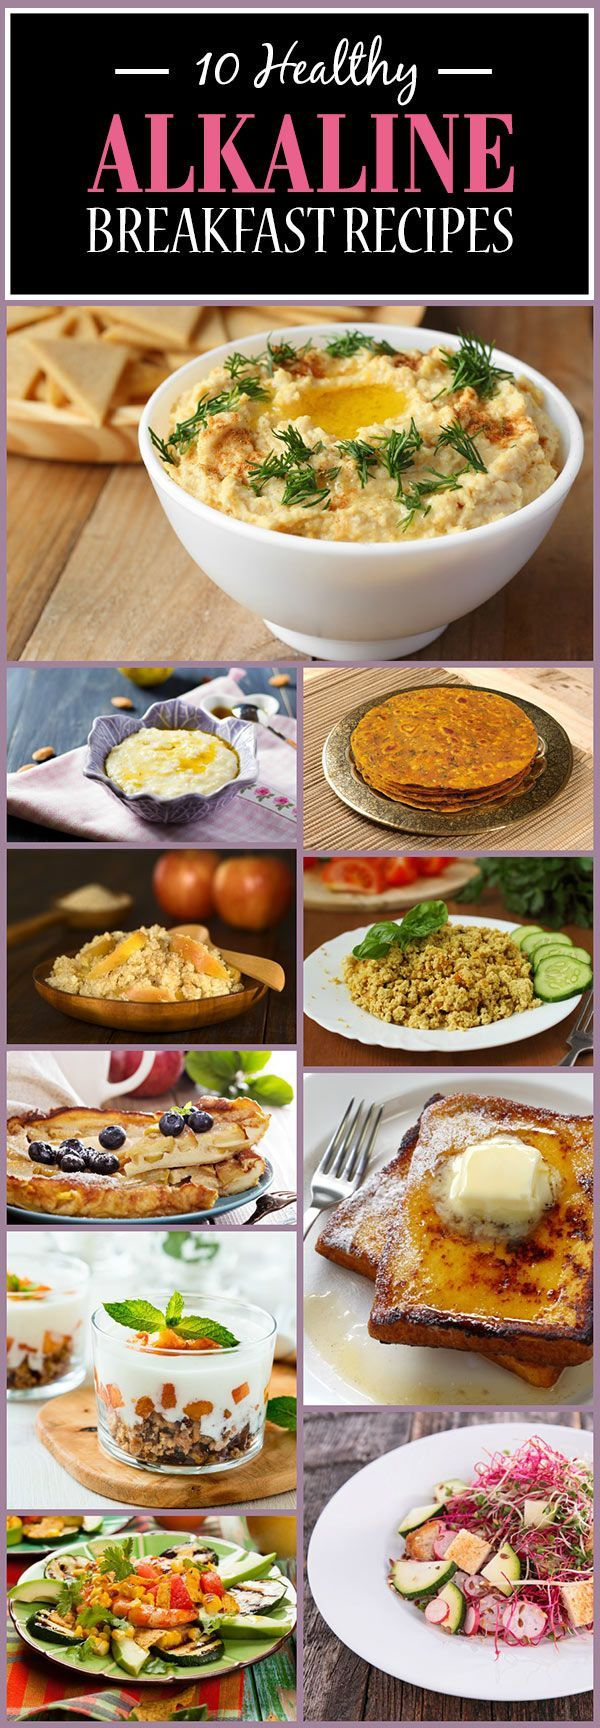 Looking for some delicious alkaline breakfast recipes? We have some of the best ones enlisted for you! #breakfast #recipes #brunch #easy #recipe